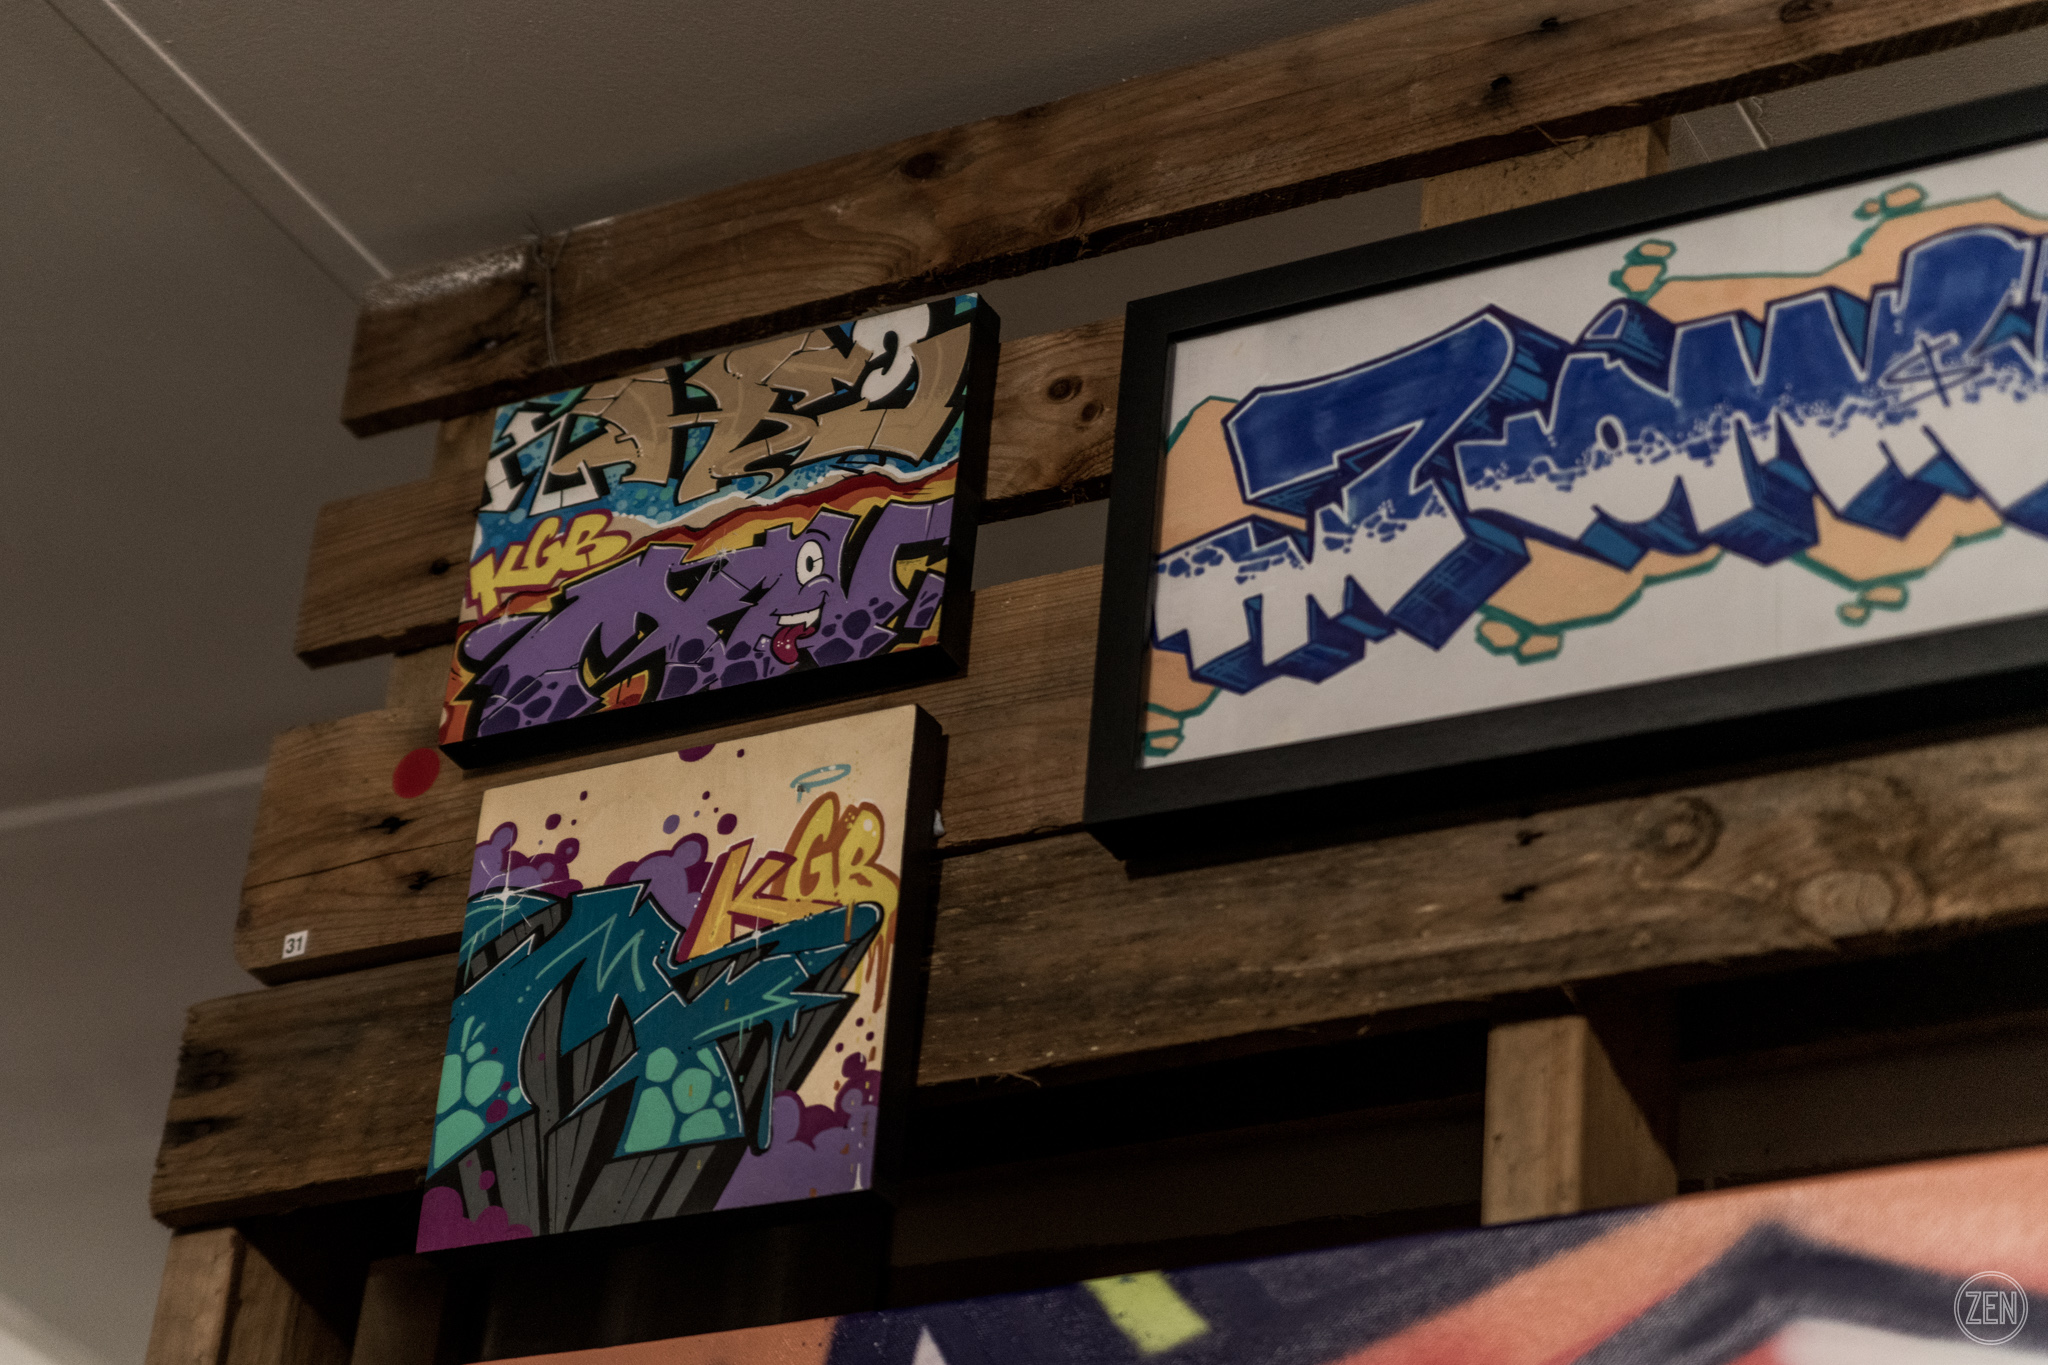 2019-03-30 - CAN2Canvas - Gallery448 015